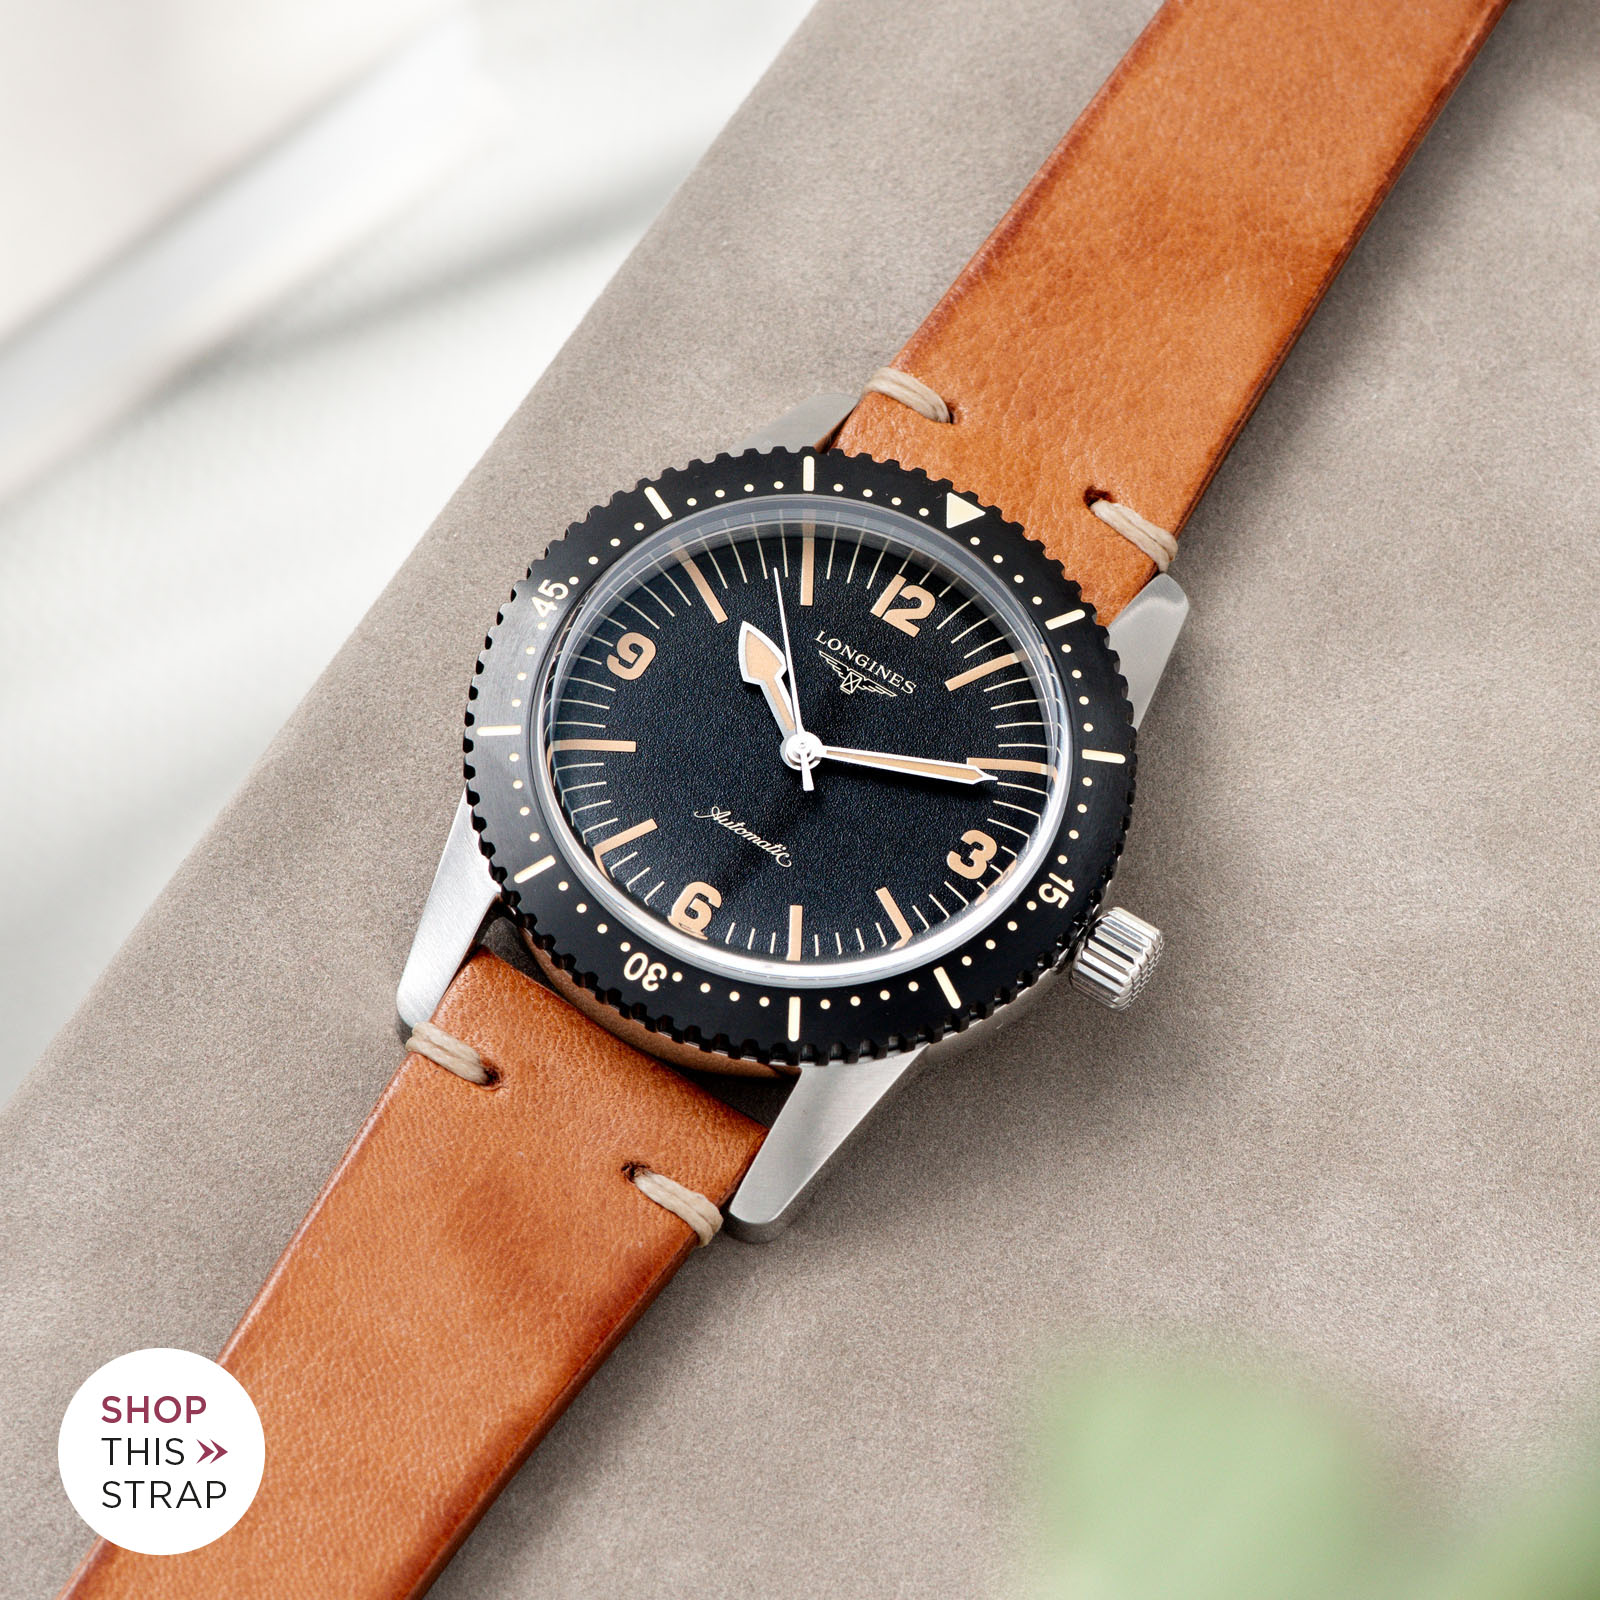 Bulang and Sons_Strap Guide_Longines Skin Diver_Caramel Brown Leather Watch Strap